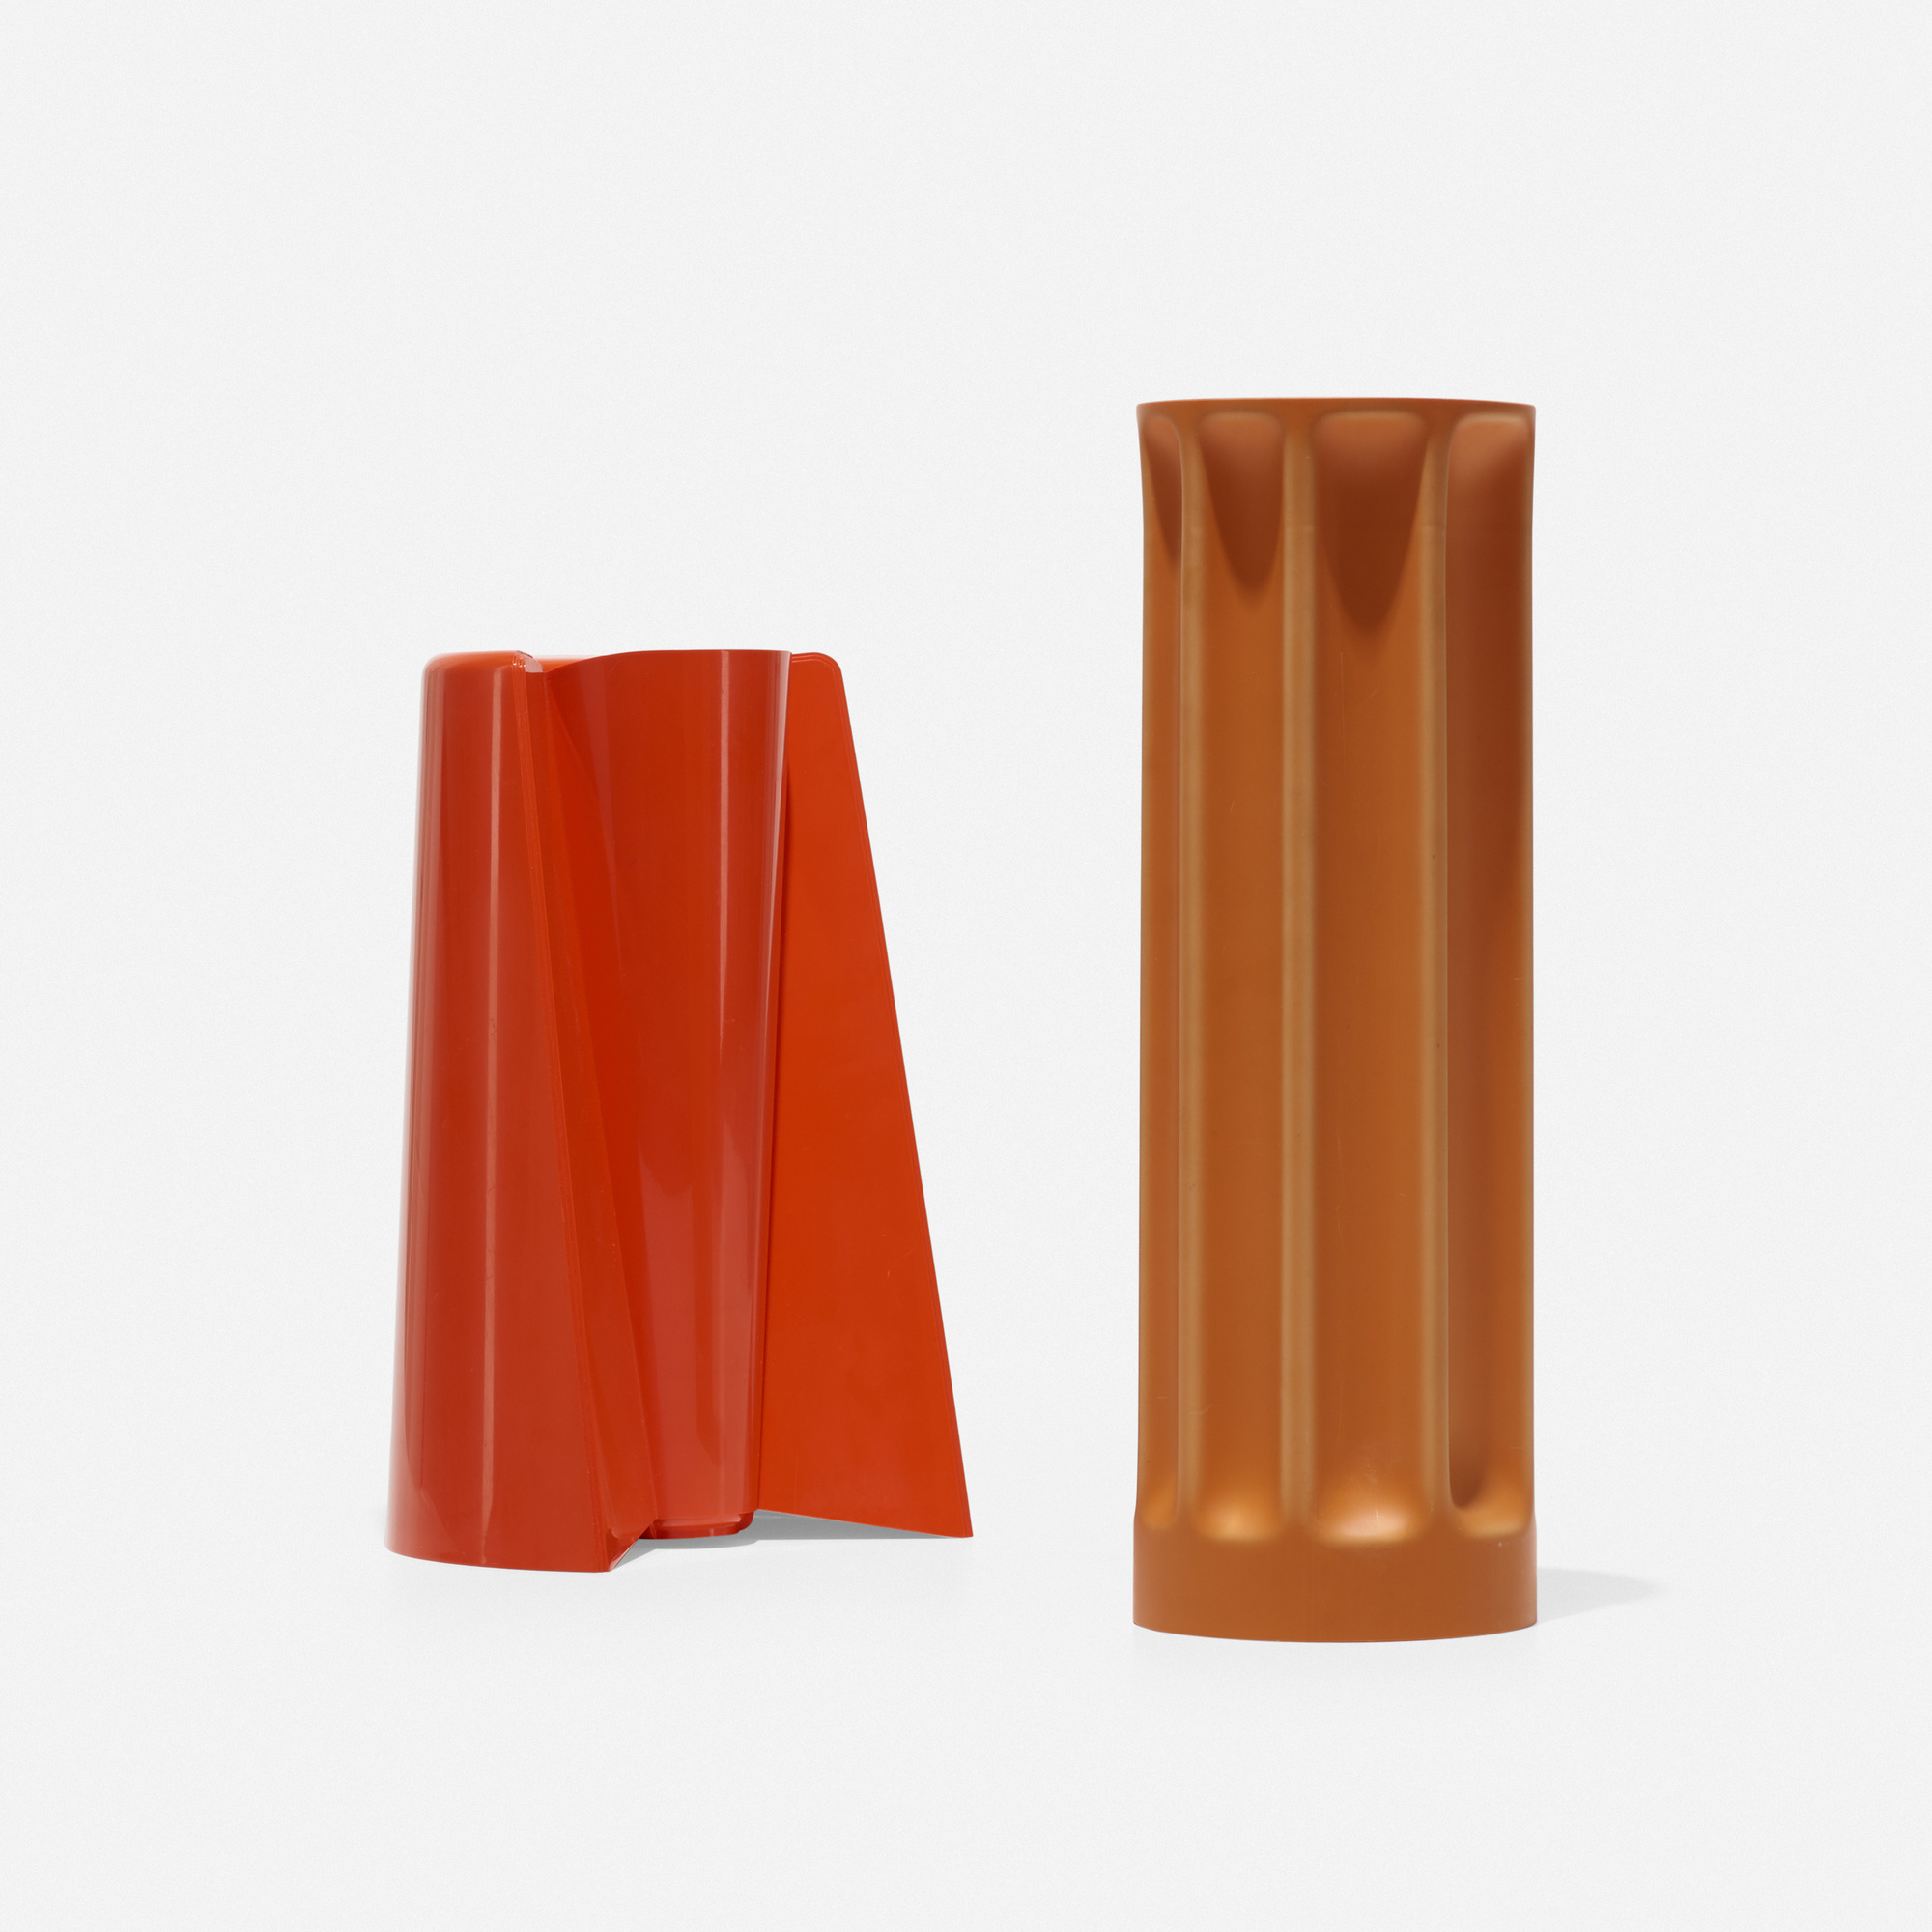 202: Enzo Mari / Pago Pago and Bambu vases (1 of 2)